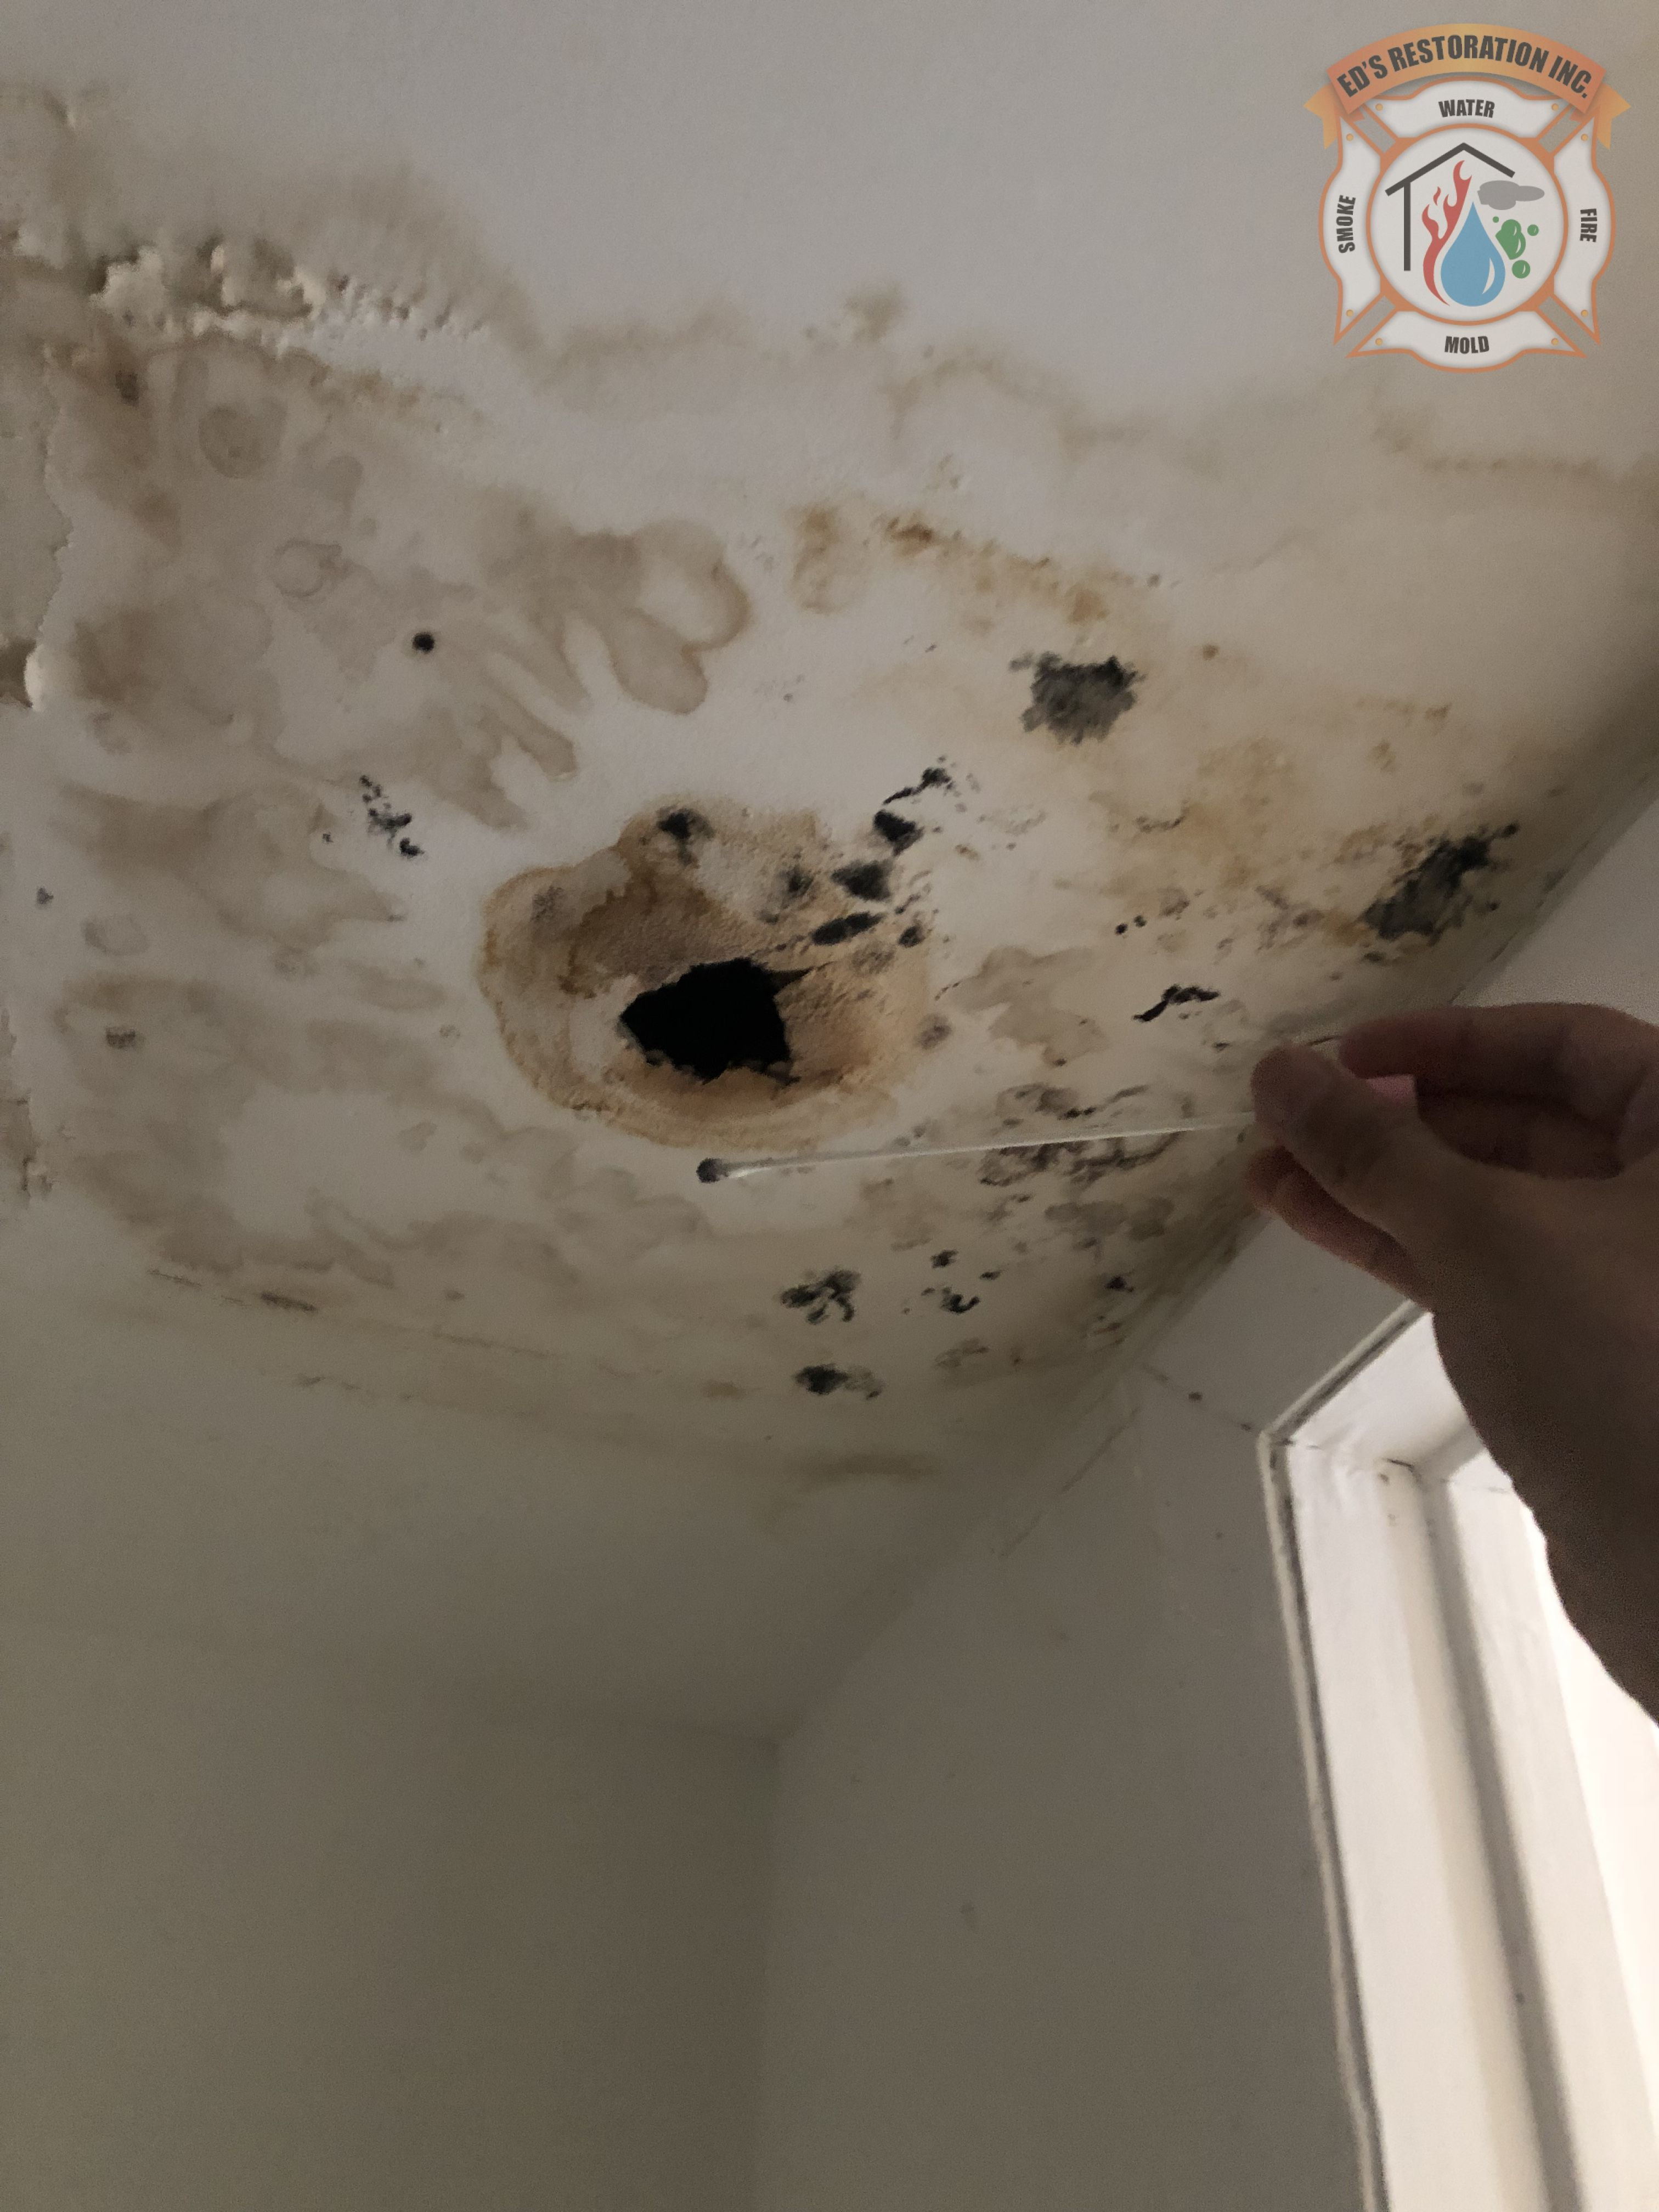 Another Case Of Water Intrusion Leading To Mold Damage In A Property This Particular Case Is An Apartment Un Bathroom Ceiling Mold On Bathroom Ceiling Ceiling